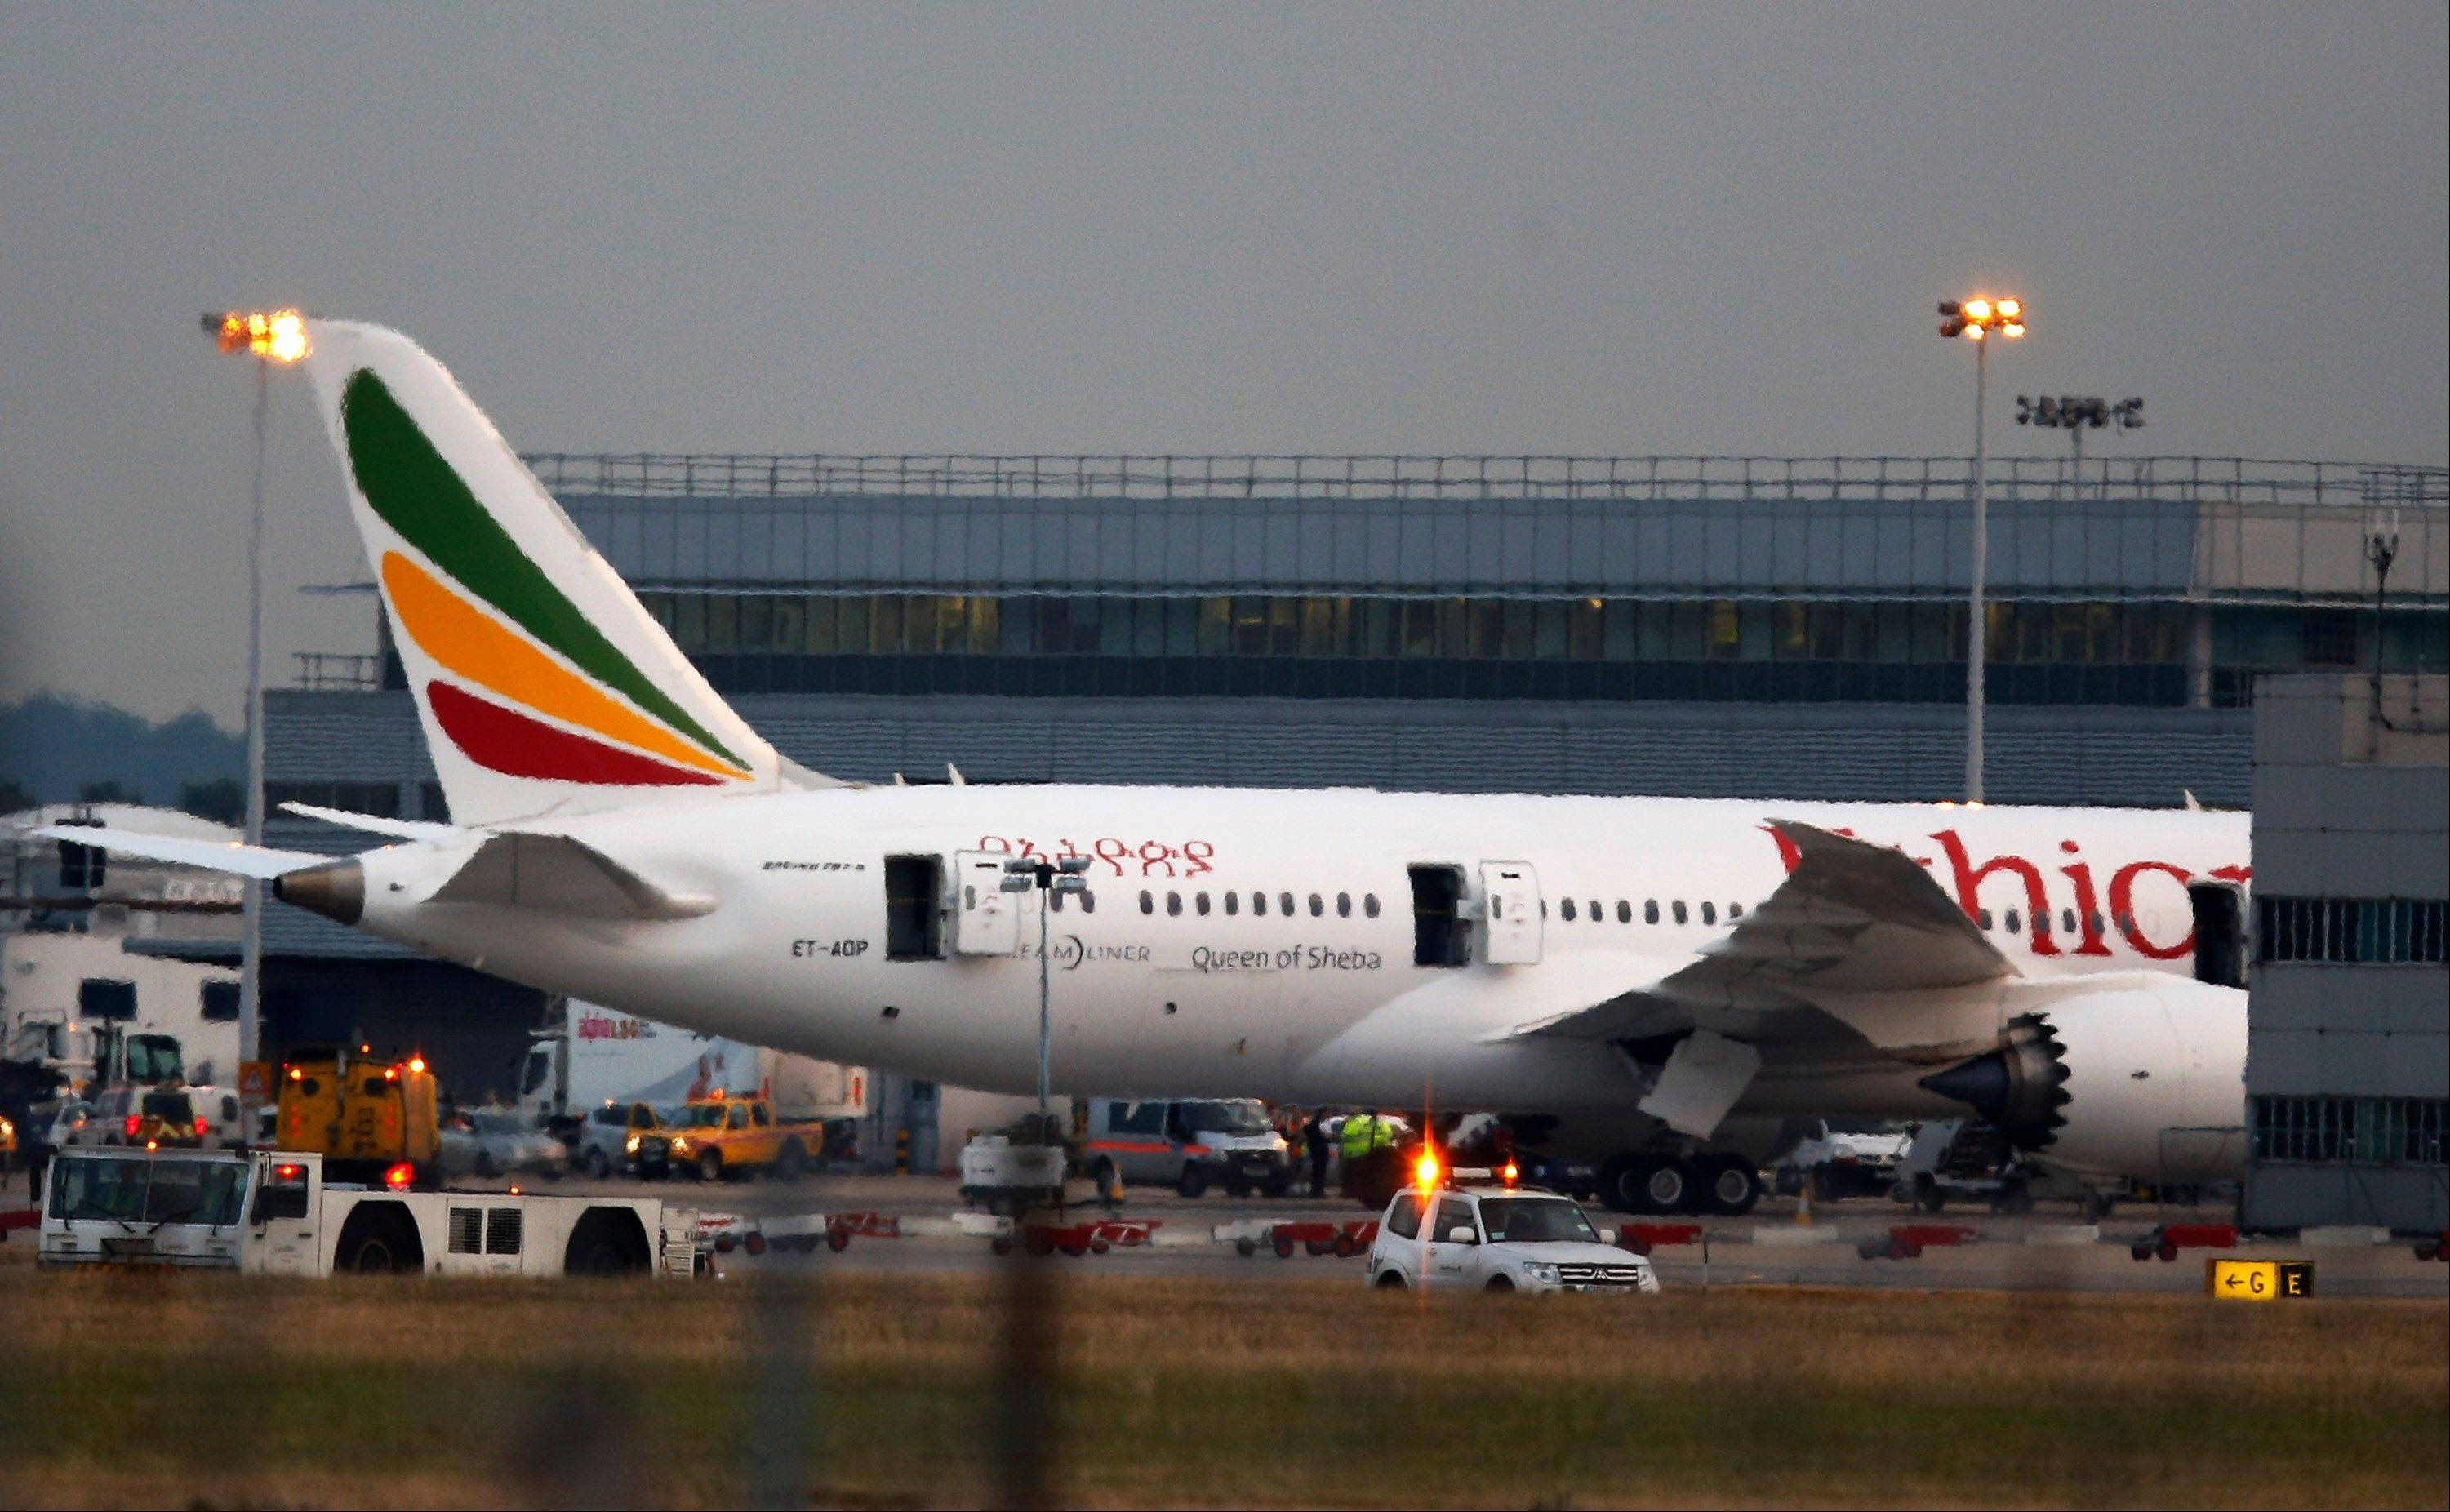 The Air Ethiopian Boeing 787 Dreamliner �Queen of Sheba� plane on the runway near Terminal 3, at Heathrow Airport, London.